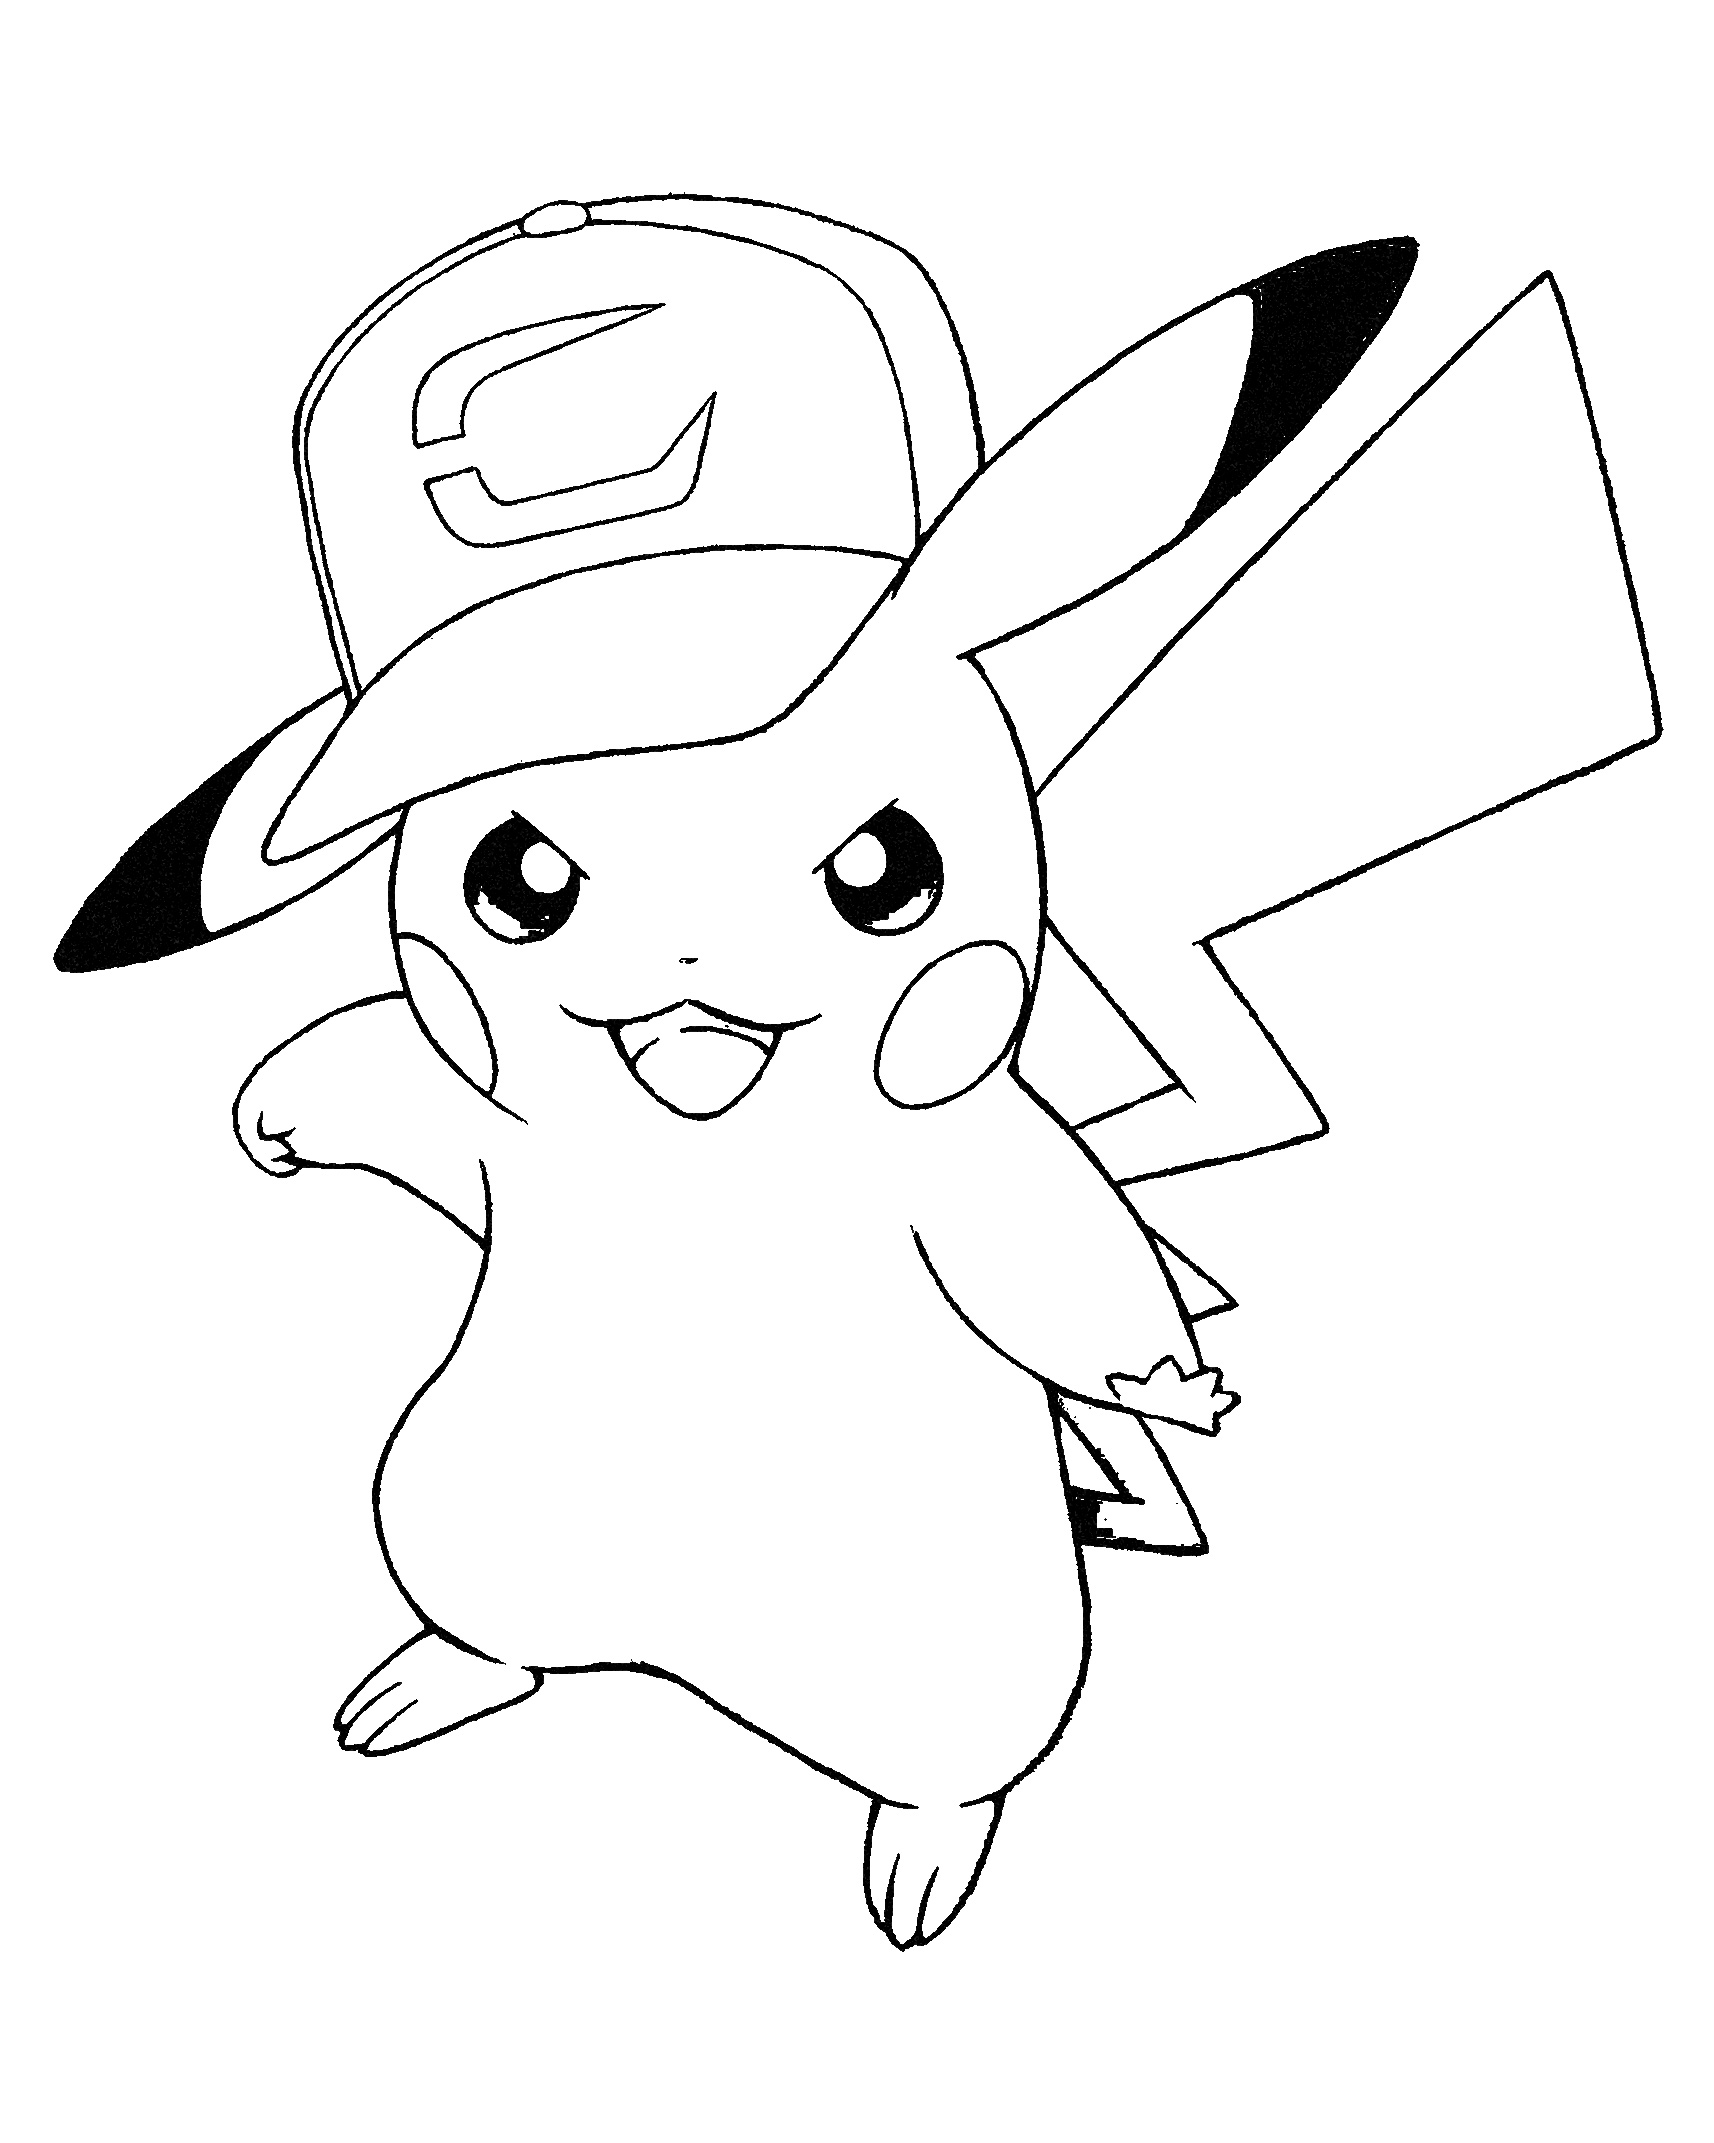 coloring pages of pikachu pikachu coloring pages to download and print for free coloring of pikachu pages